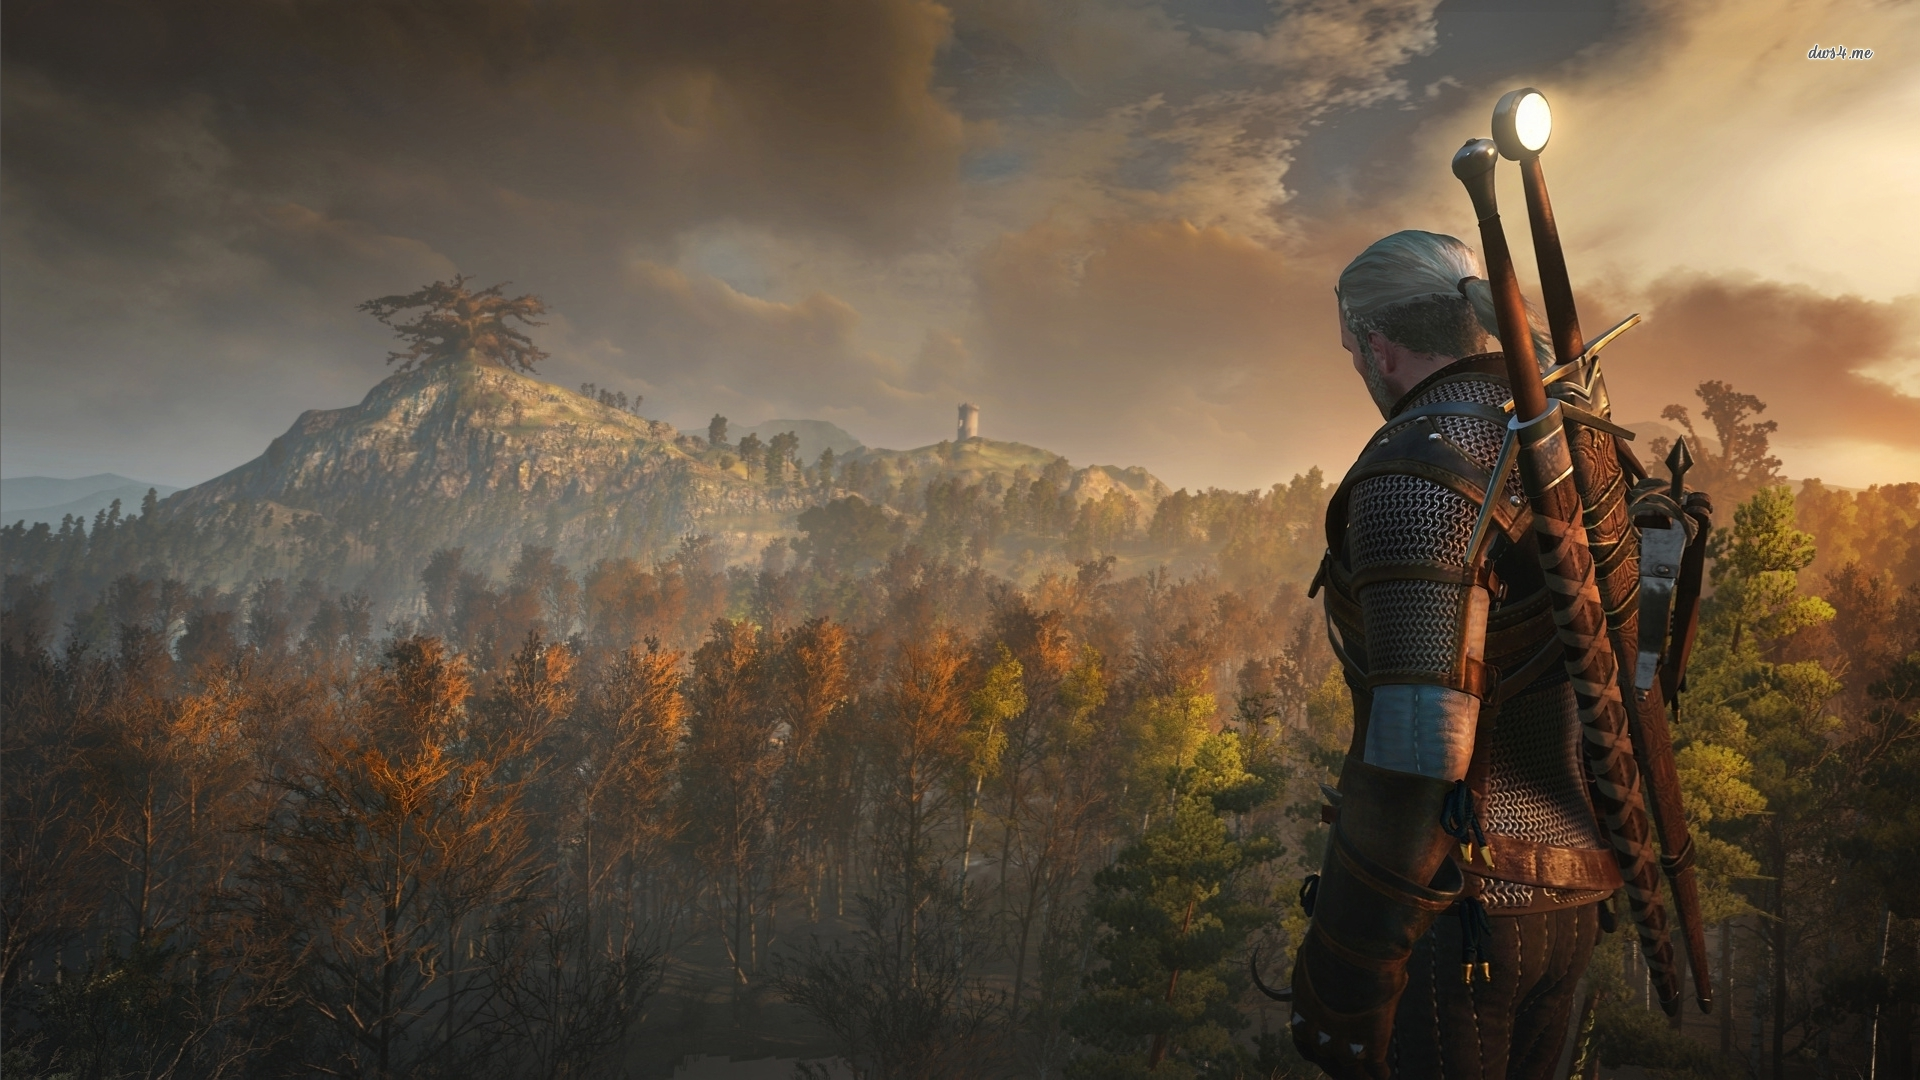 The Witcher  Cards  wallpaper K Ultra HD The witcher  Wallpapers HD, Desktop Backgrounds 1920x1080